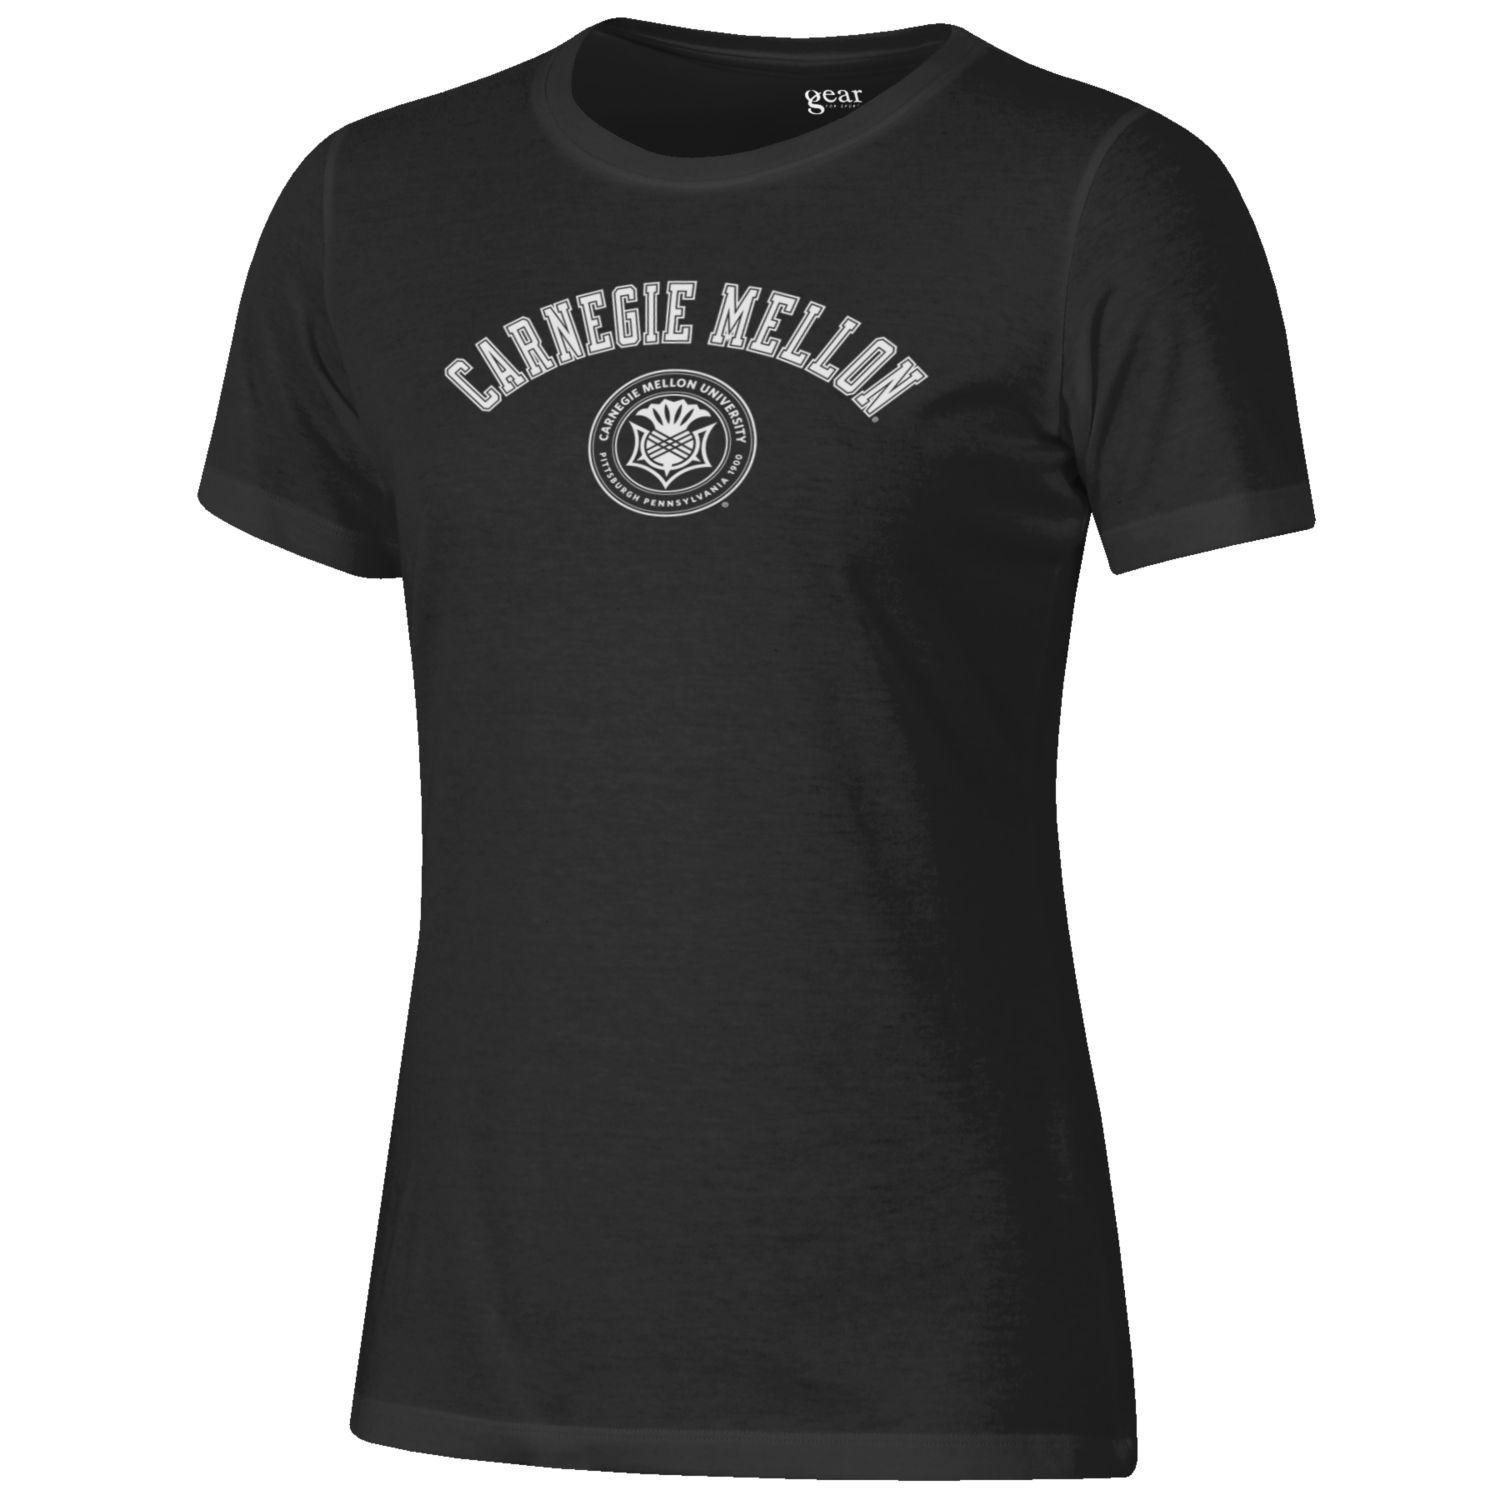 Relax Fit University Seal Tee: Black